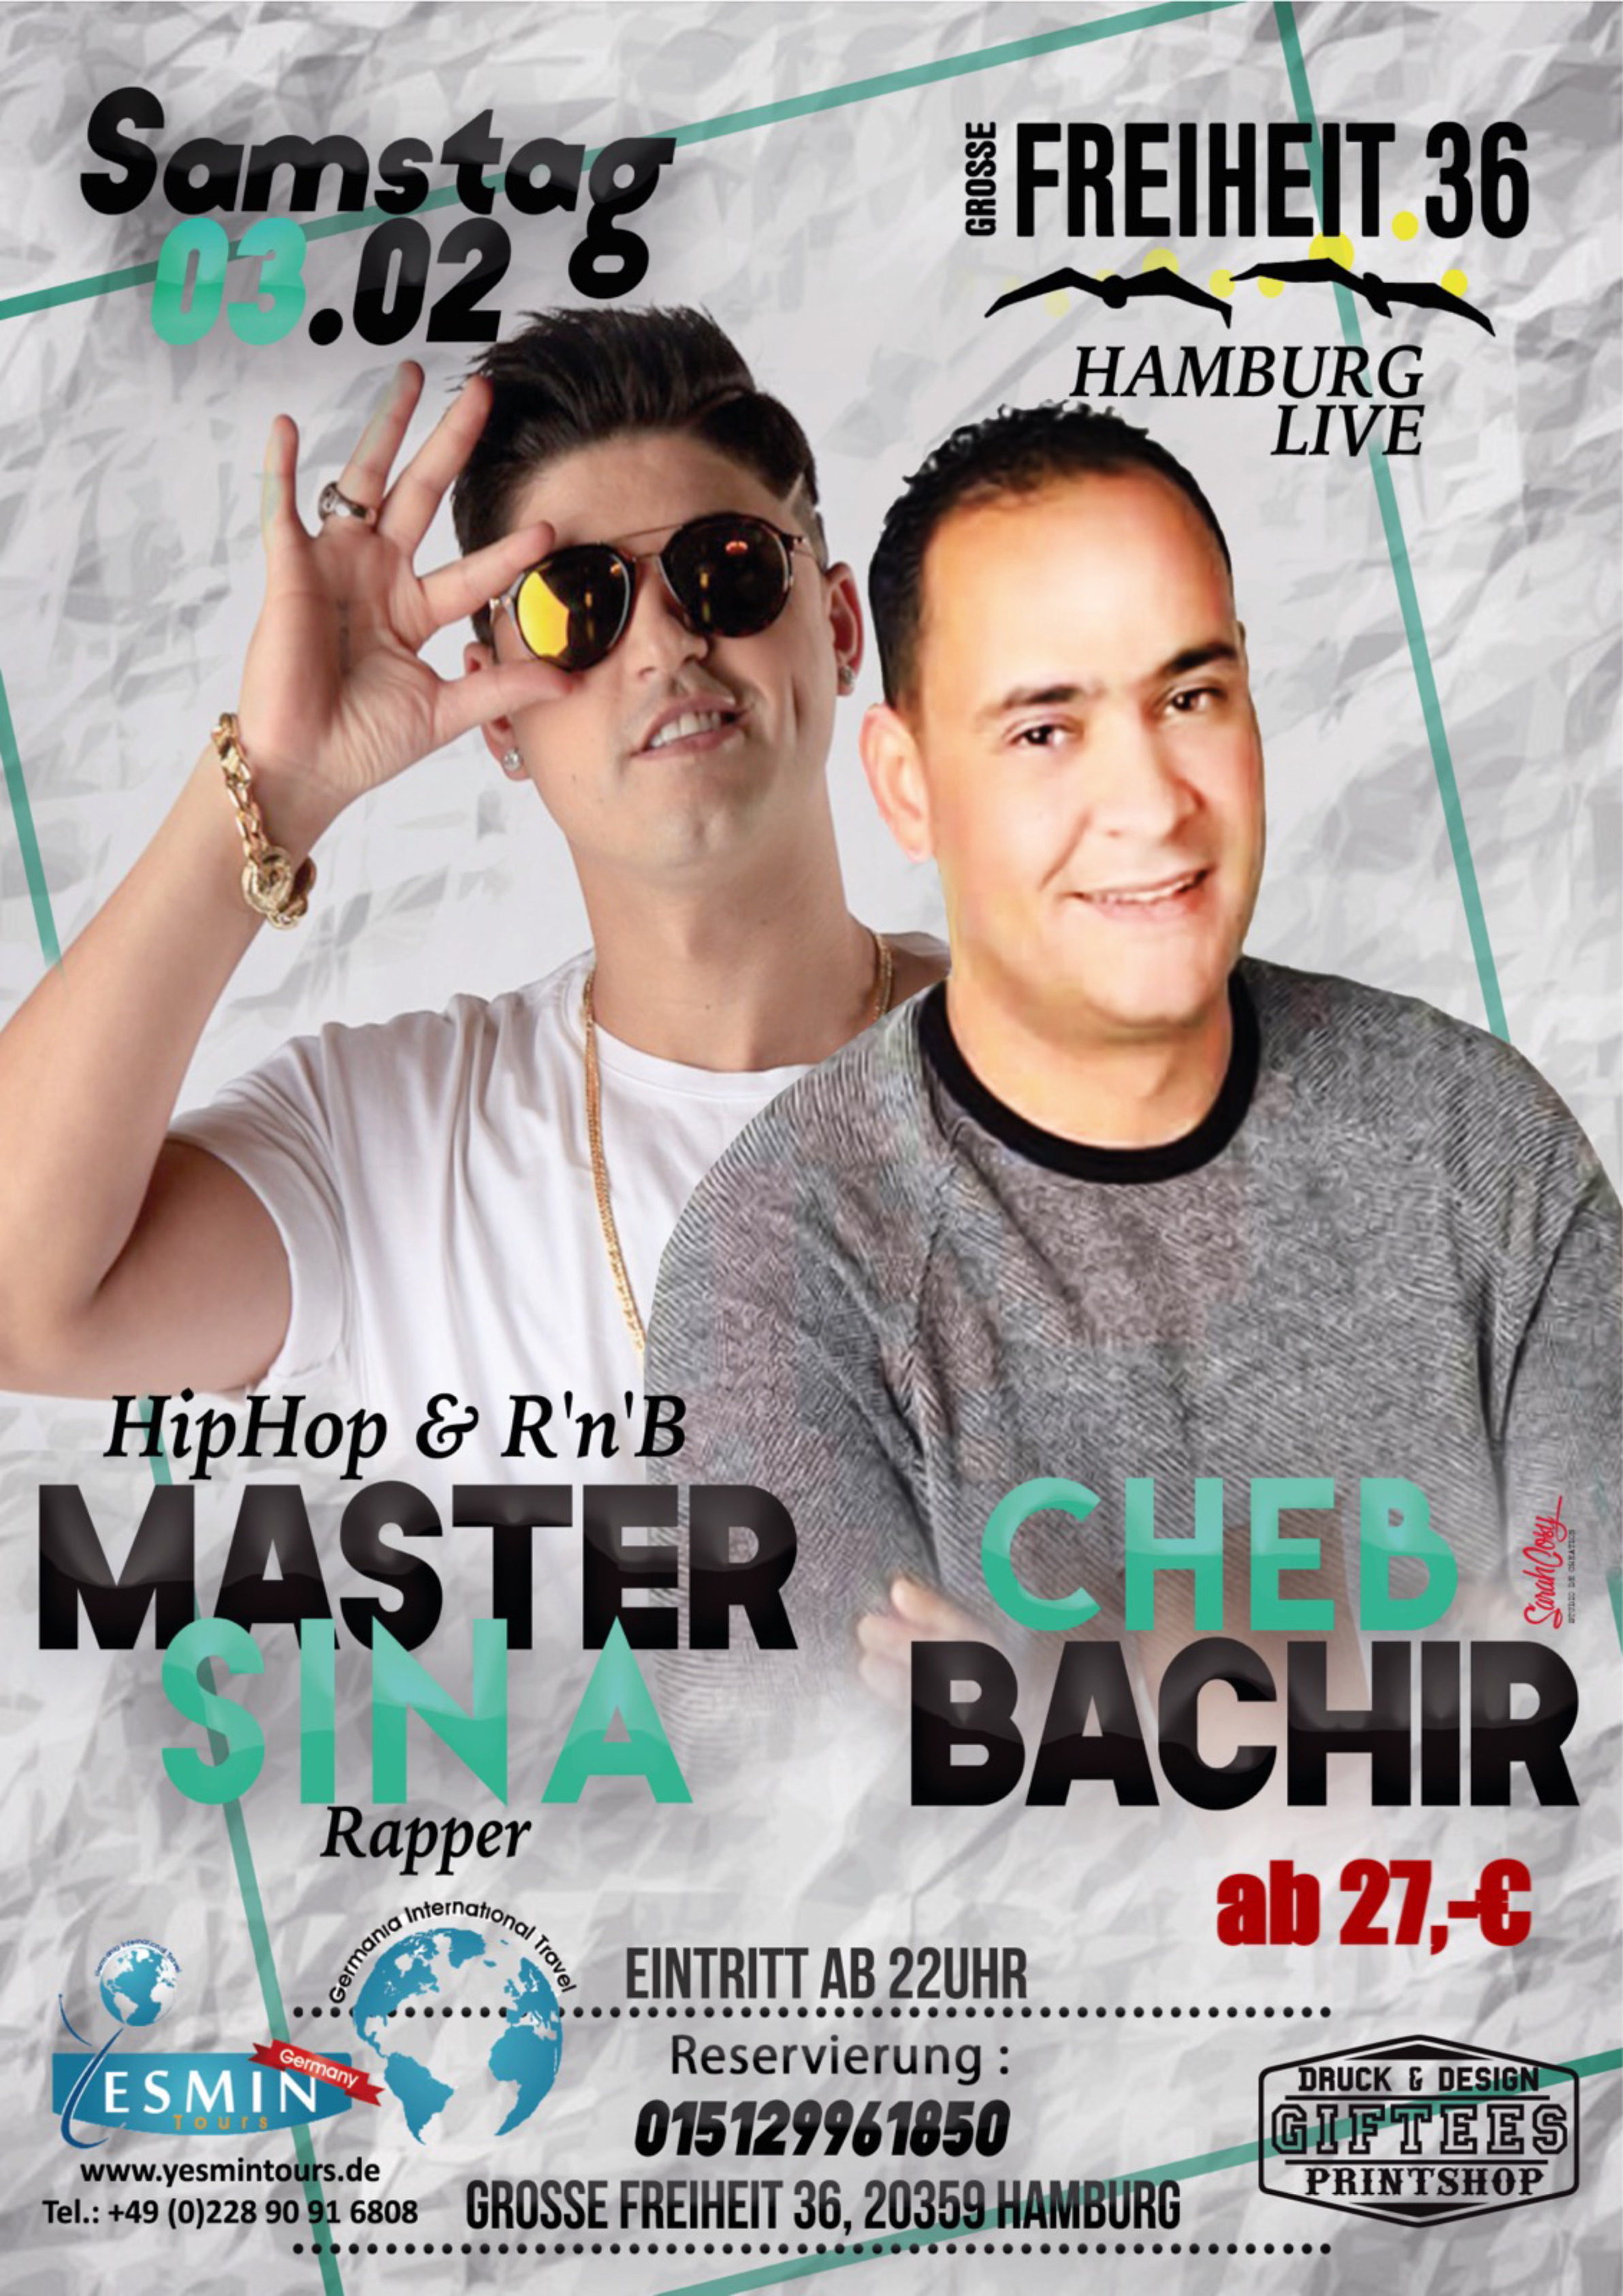 Preview: Master Sina & Cheb Bachir